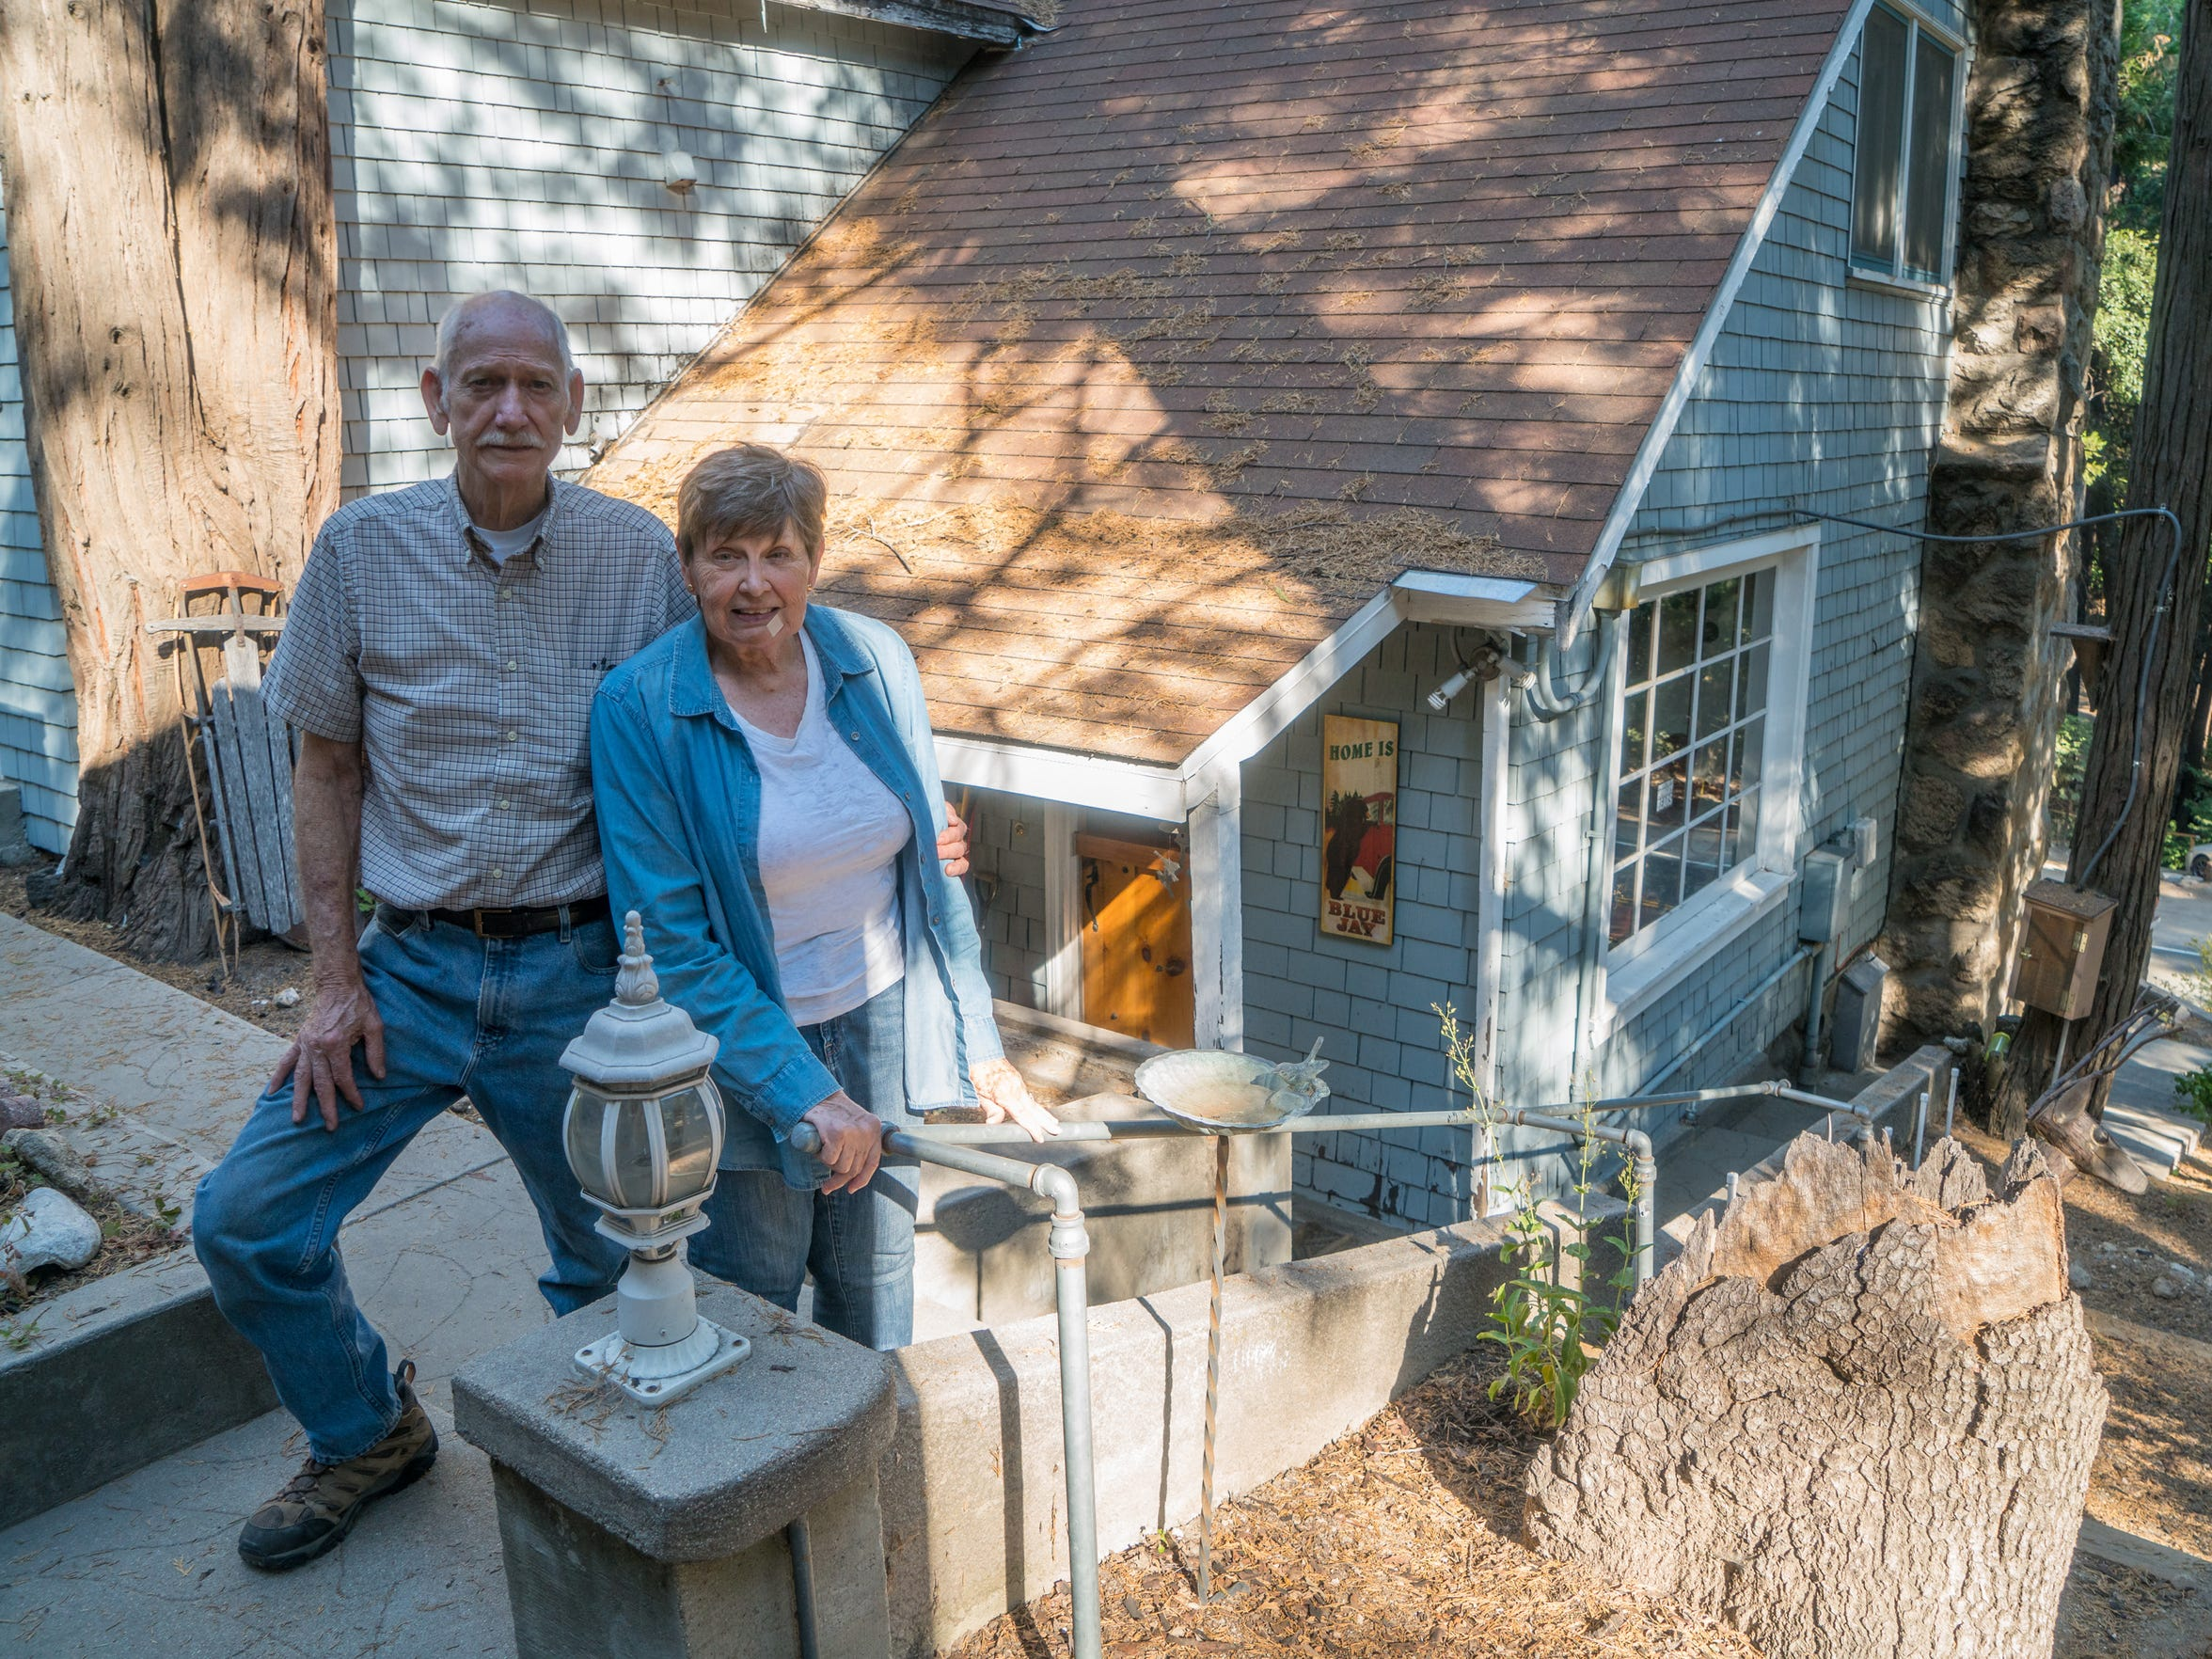 Sharon and Don Bailey stand outside their home in Blue Jay in the San Bernardino Mountains. The Baileys have learned to use much less water since their well began to fail in February.